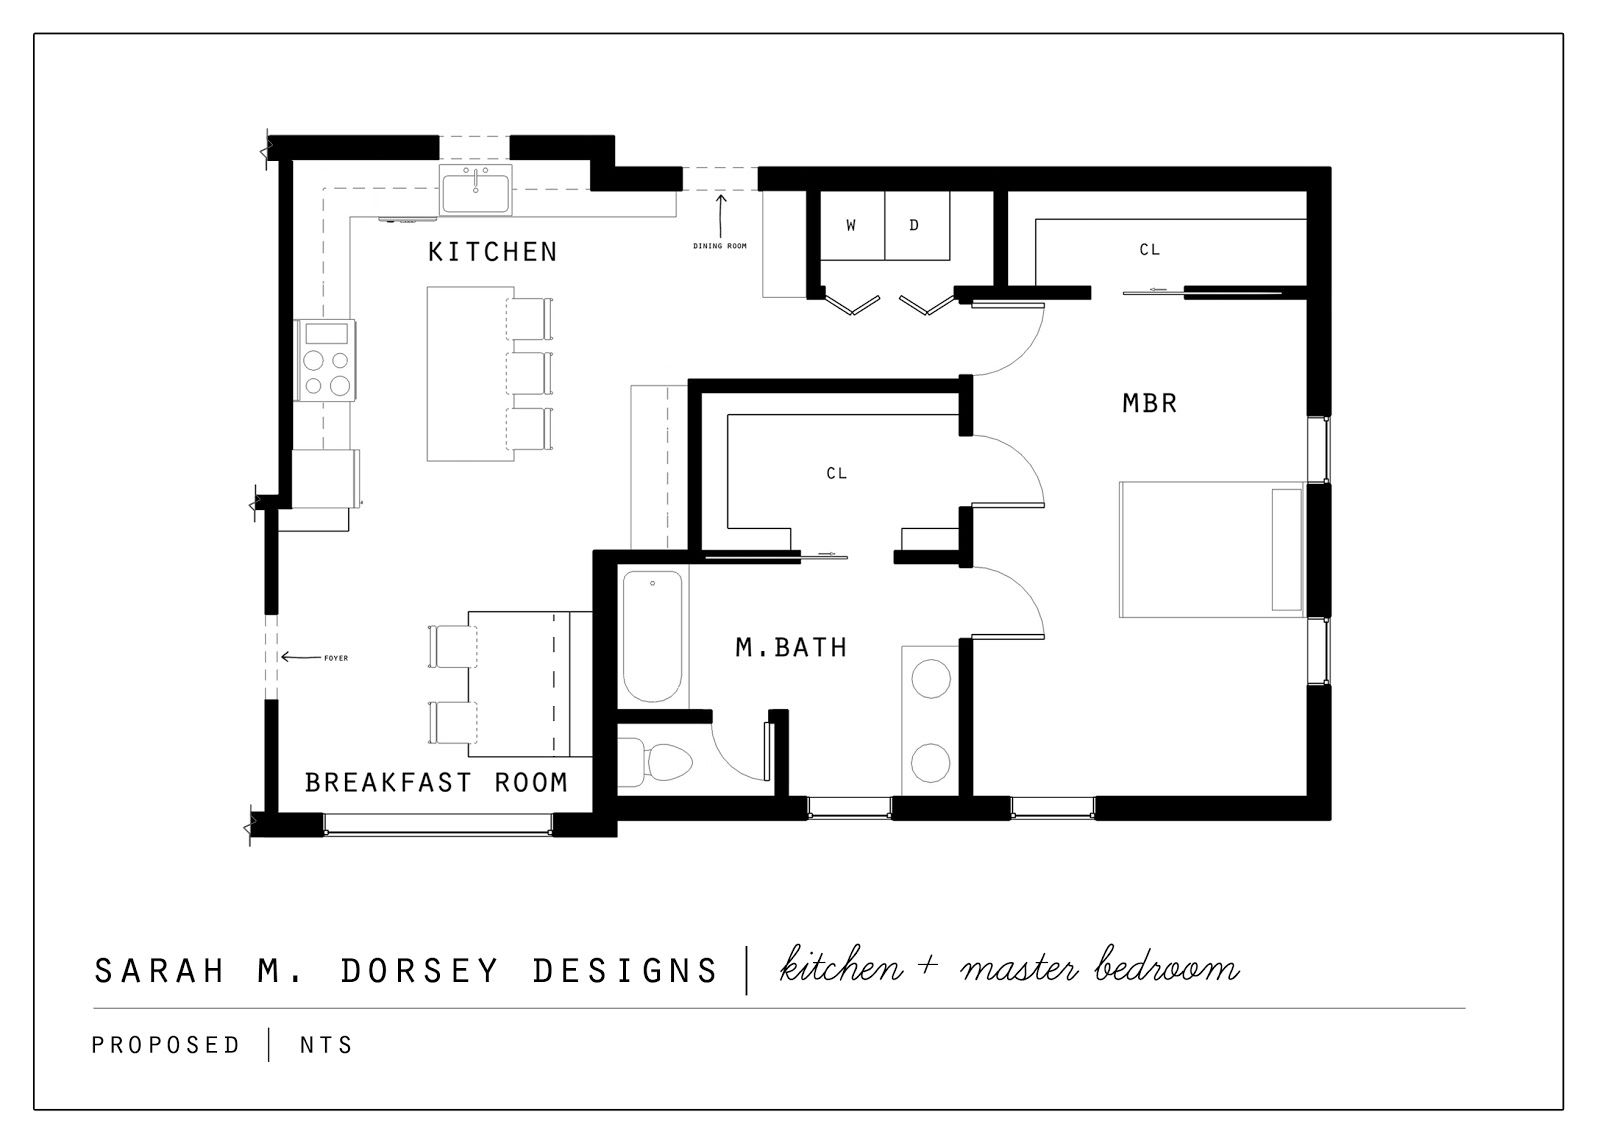 Floor plans for master bedroom additions bedroom for Bedroom addition plans free